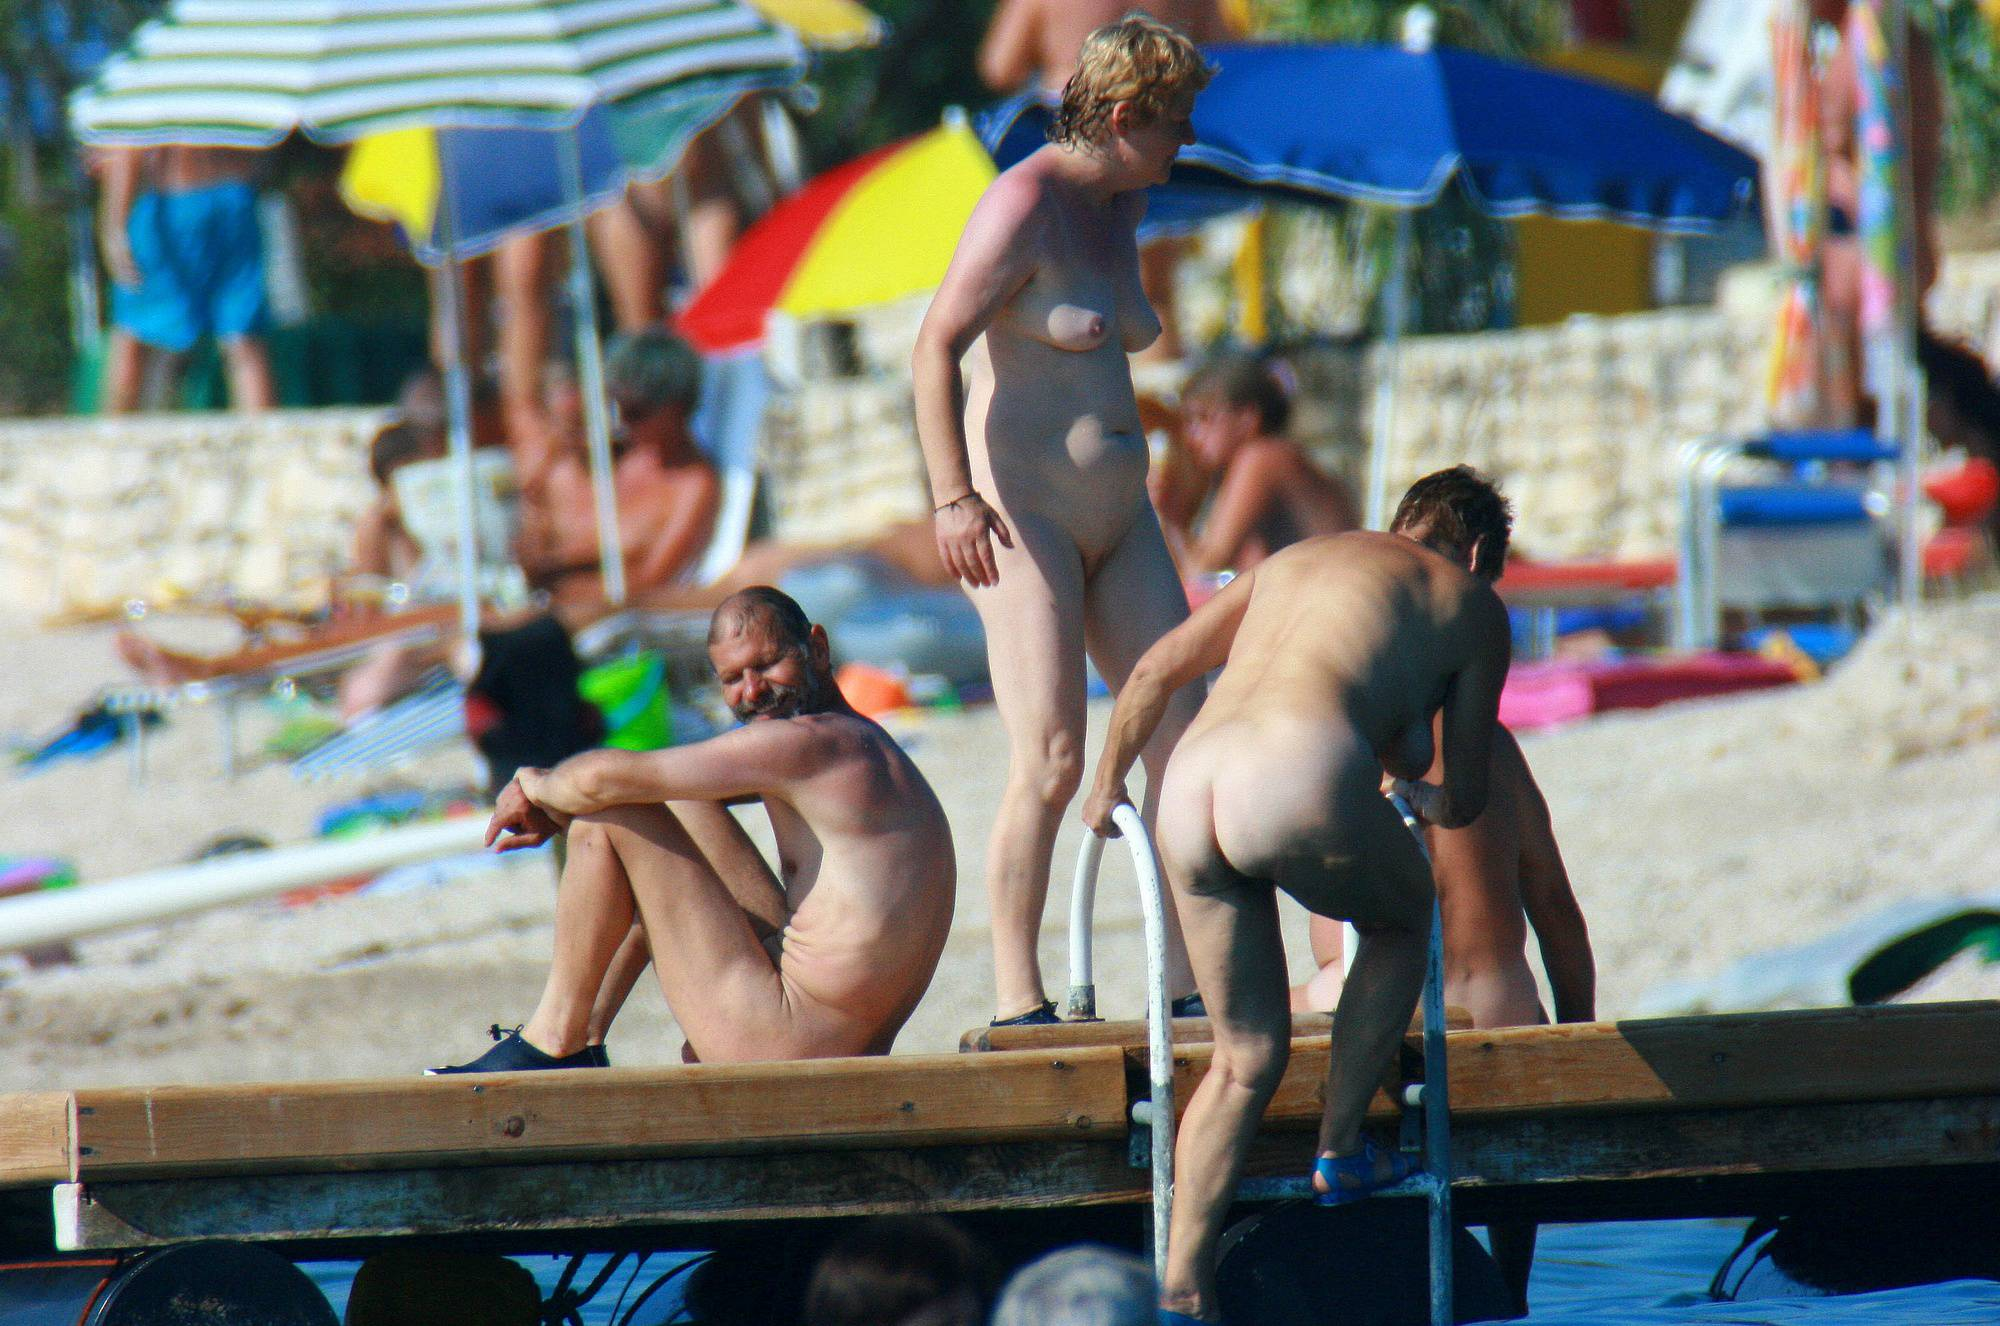 Nudist Photos Ula FKK Wooden Water Slab - 2